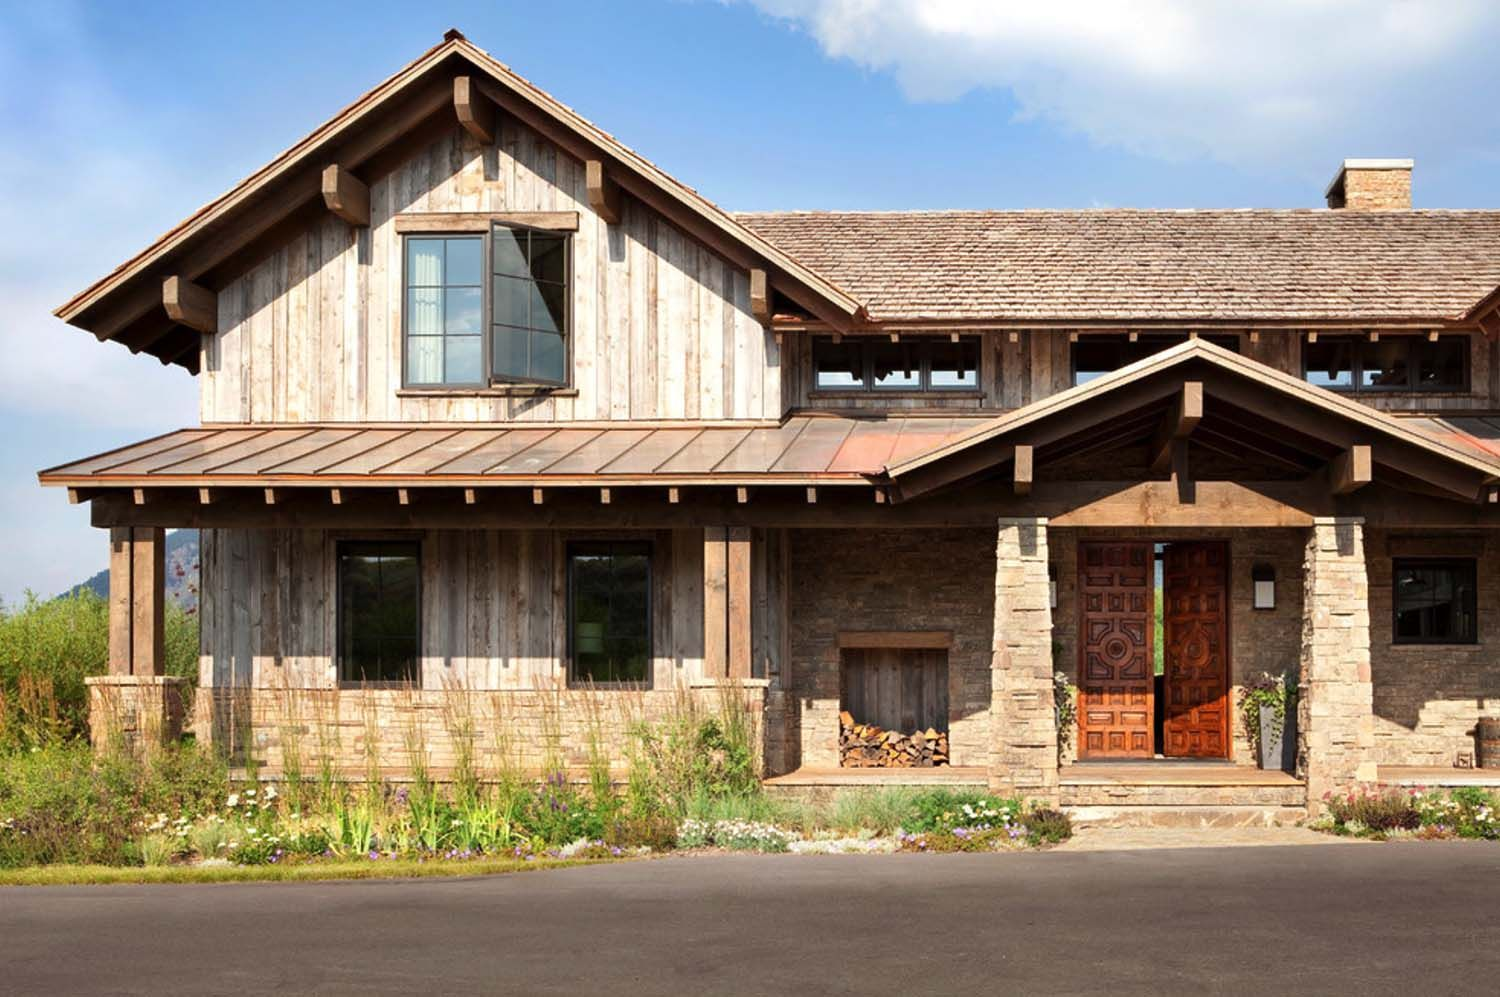 Wyoming farmhouse offers exquisite mix of antiques and ... on exterior fireplace designs, exterior brick house designs, basement ranch home designs, exterior home house design, interior ranch home designs, exterior bungalow designs, living room ranch home designs, modern ranch home designs, remodeled ranch home designs, front ranch home designs, waterfront ranch home designs, ranch style house designs,